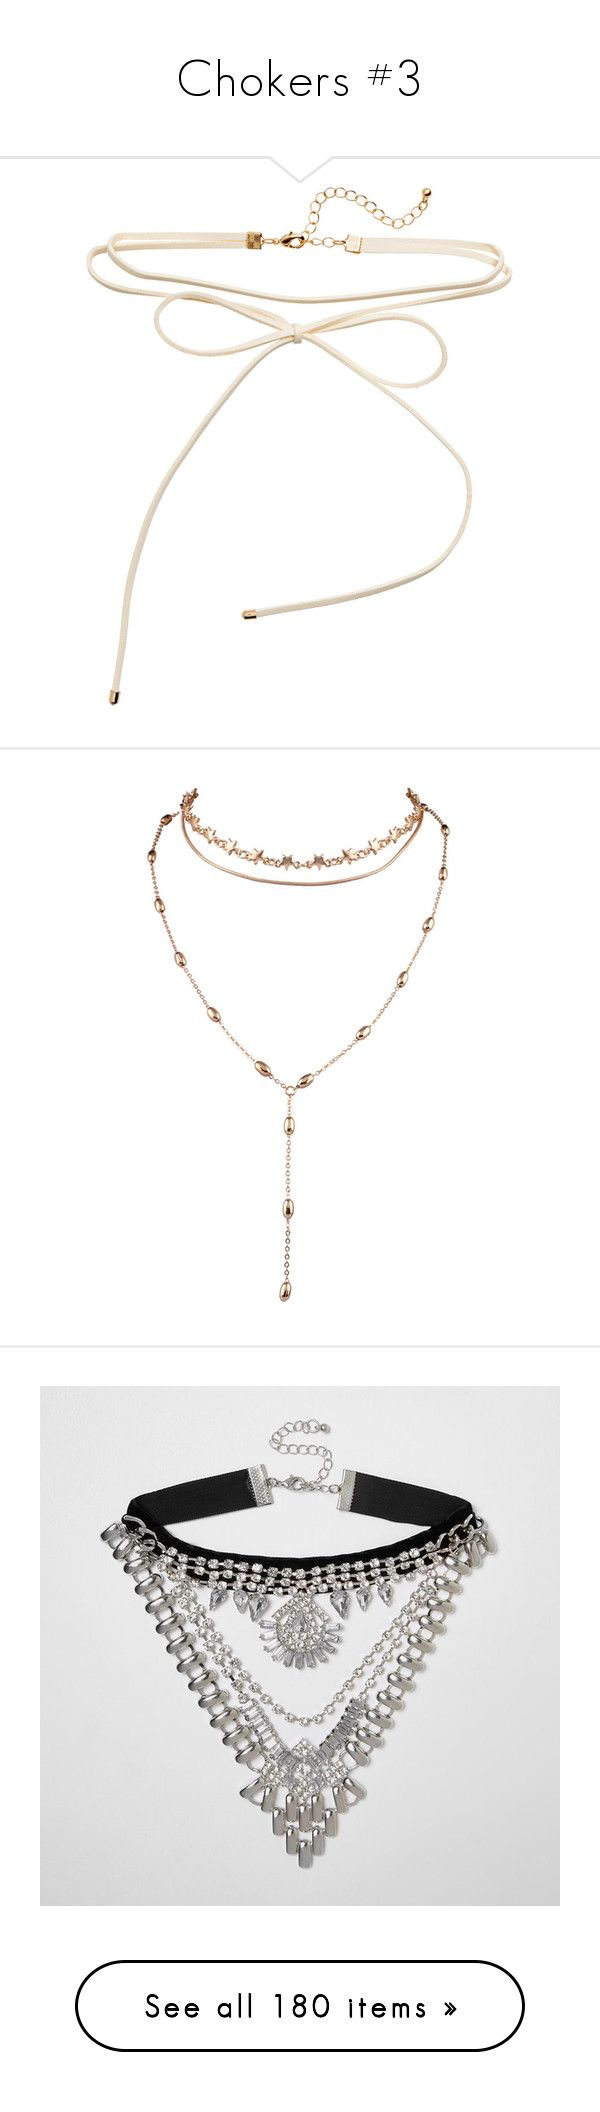 """""""Chokers #3"""" by marissa-91 ❤ liked on Polyvore featuring jewelry, necklaces, bijoux, strand necklace, choker necklace, adjustable necklace, bow necklaces, bow choker, accessories and choker"""